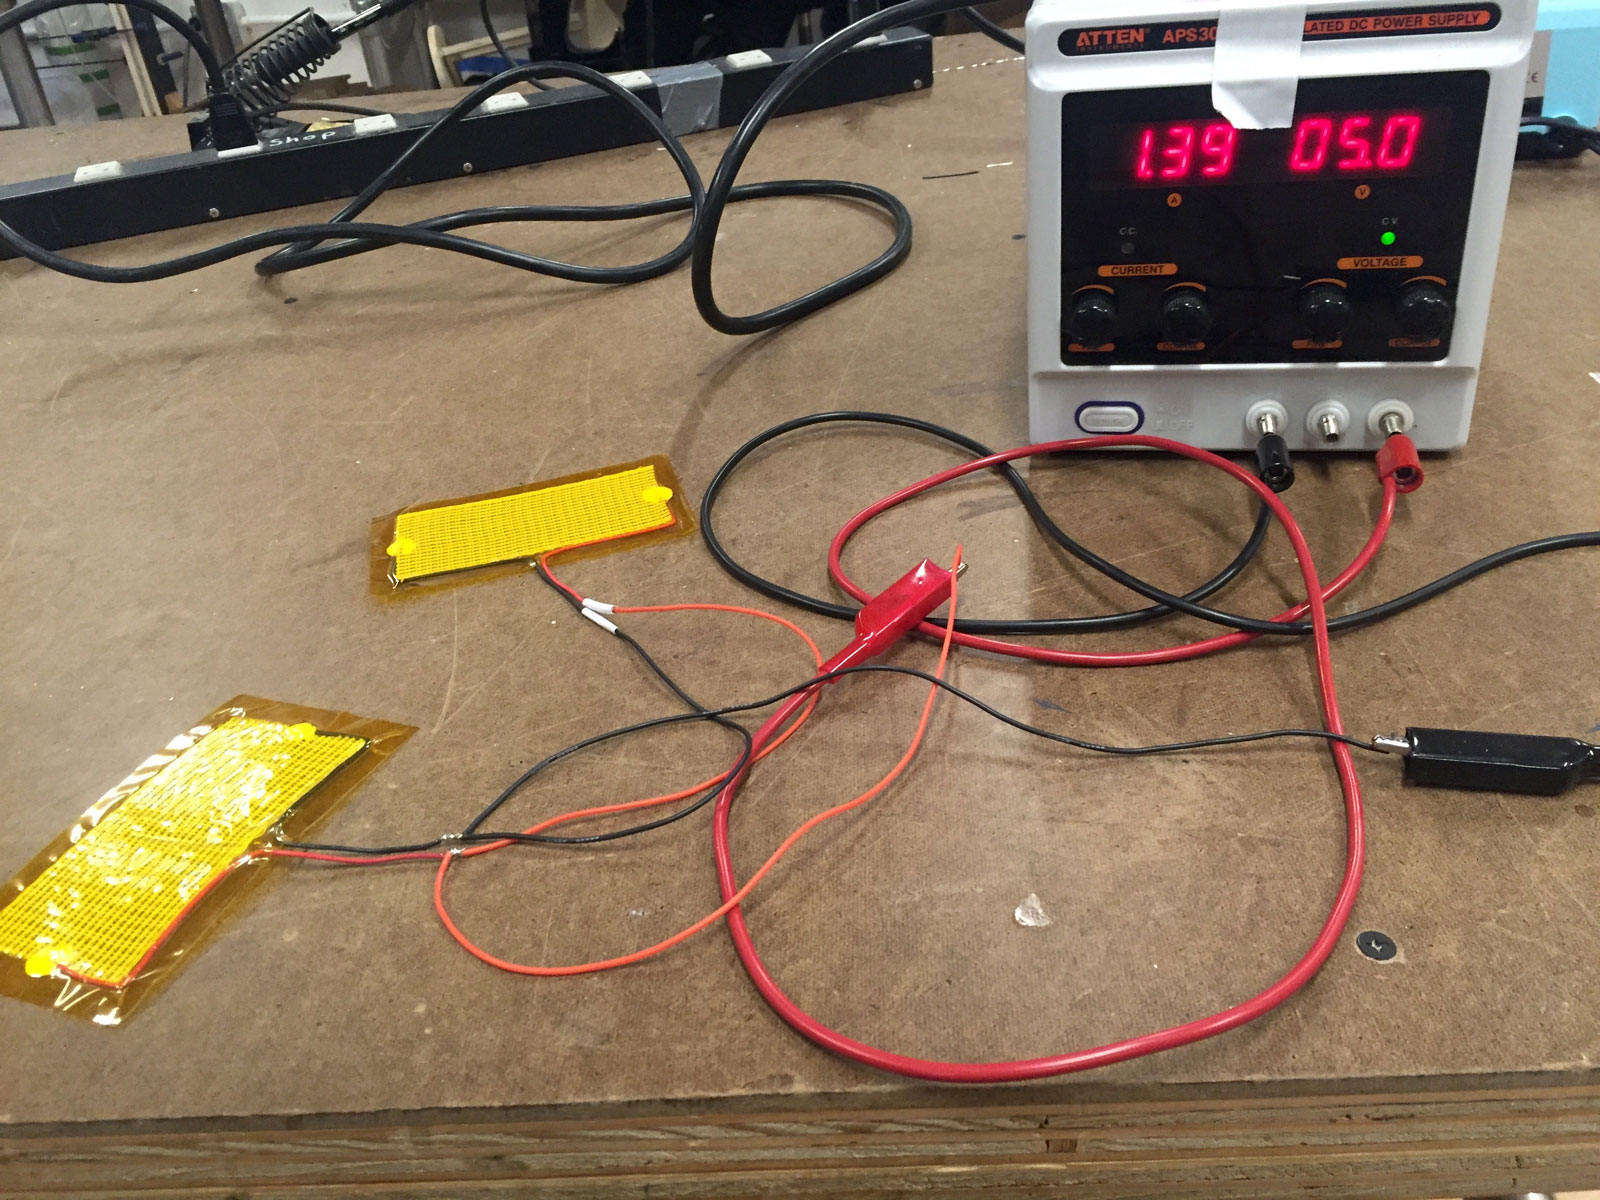 - I hooked up my heating element to a power supply to test the voltage and amperage required in order to select the appropriate battery.